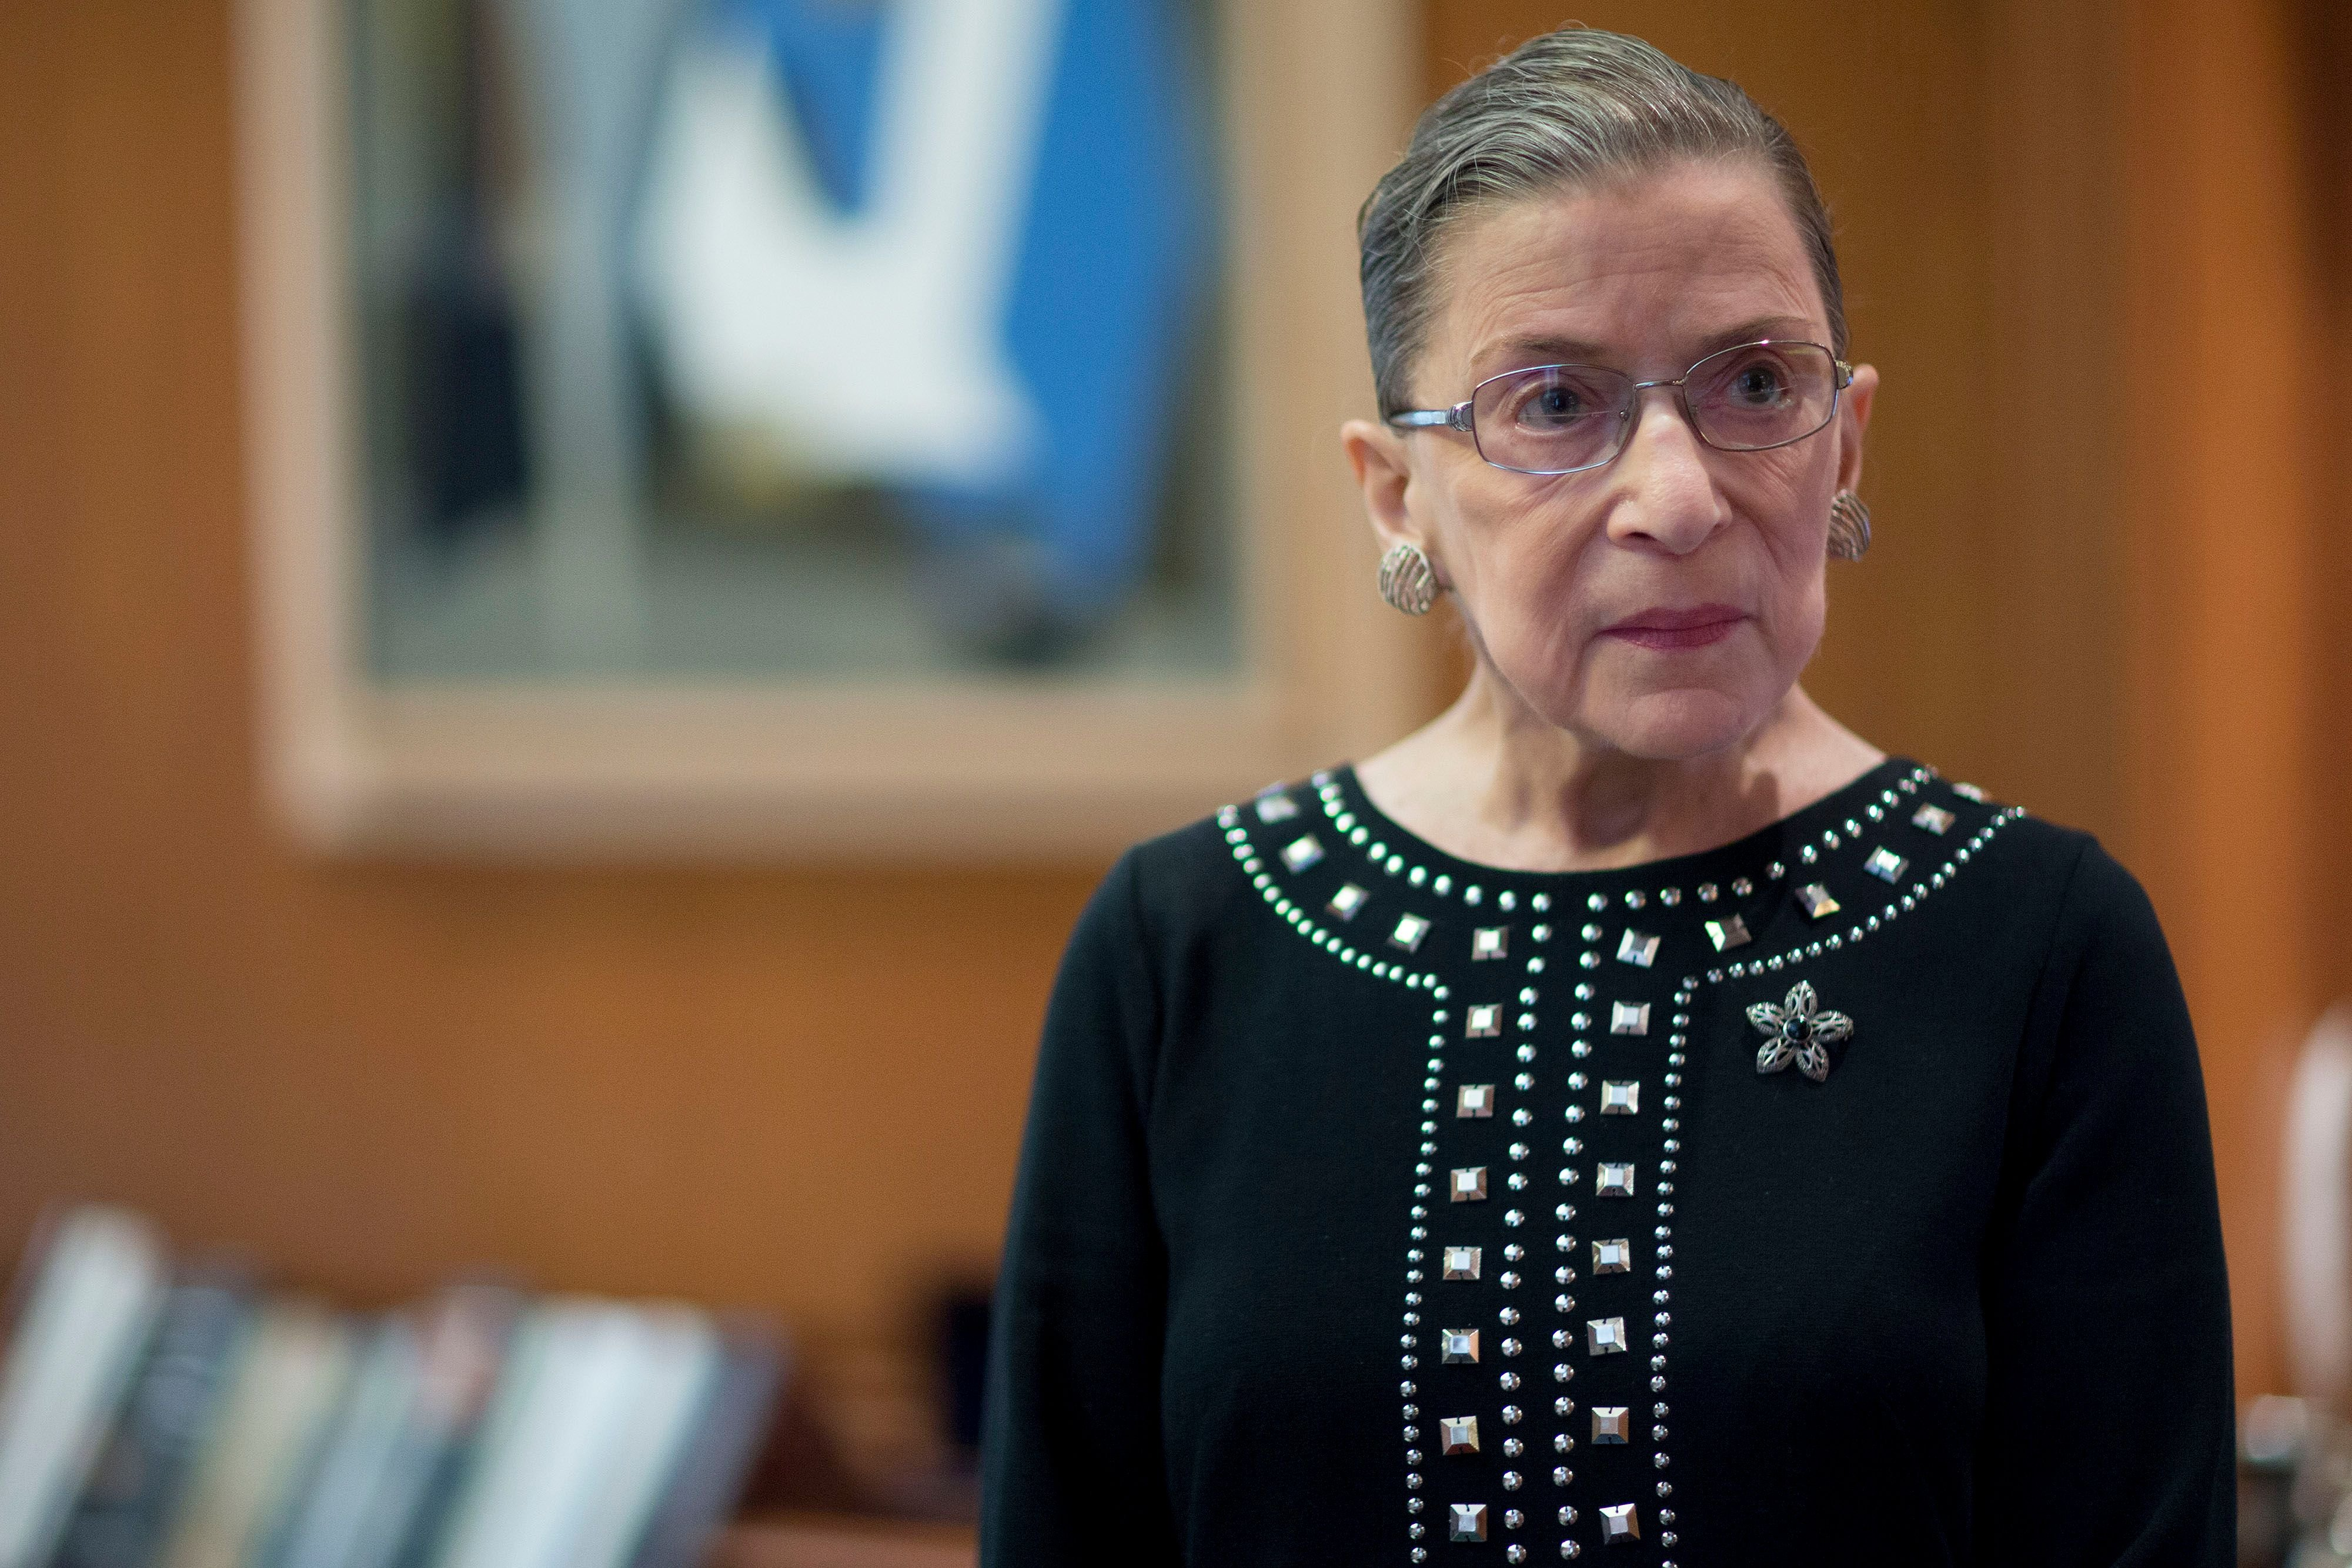 Ruth Bader Ginsburg after an interview in Washington, D.C. on August 23, 2013. | Photo: Getty Images